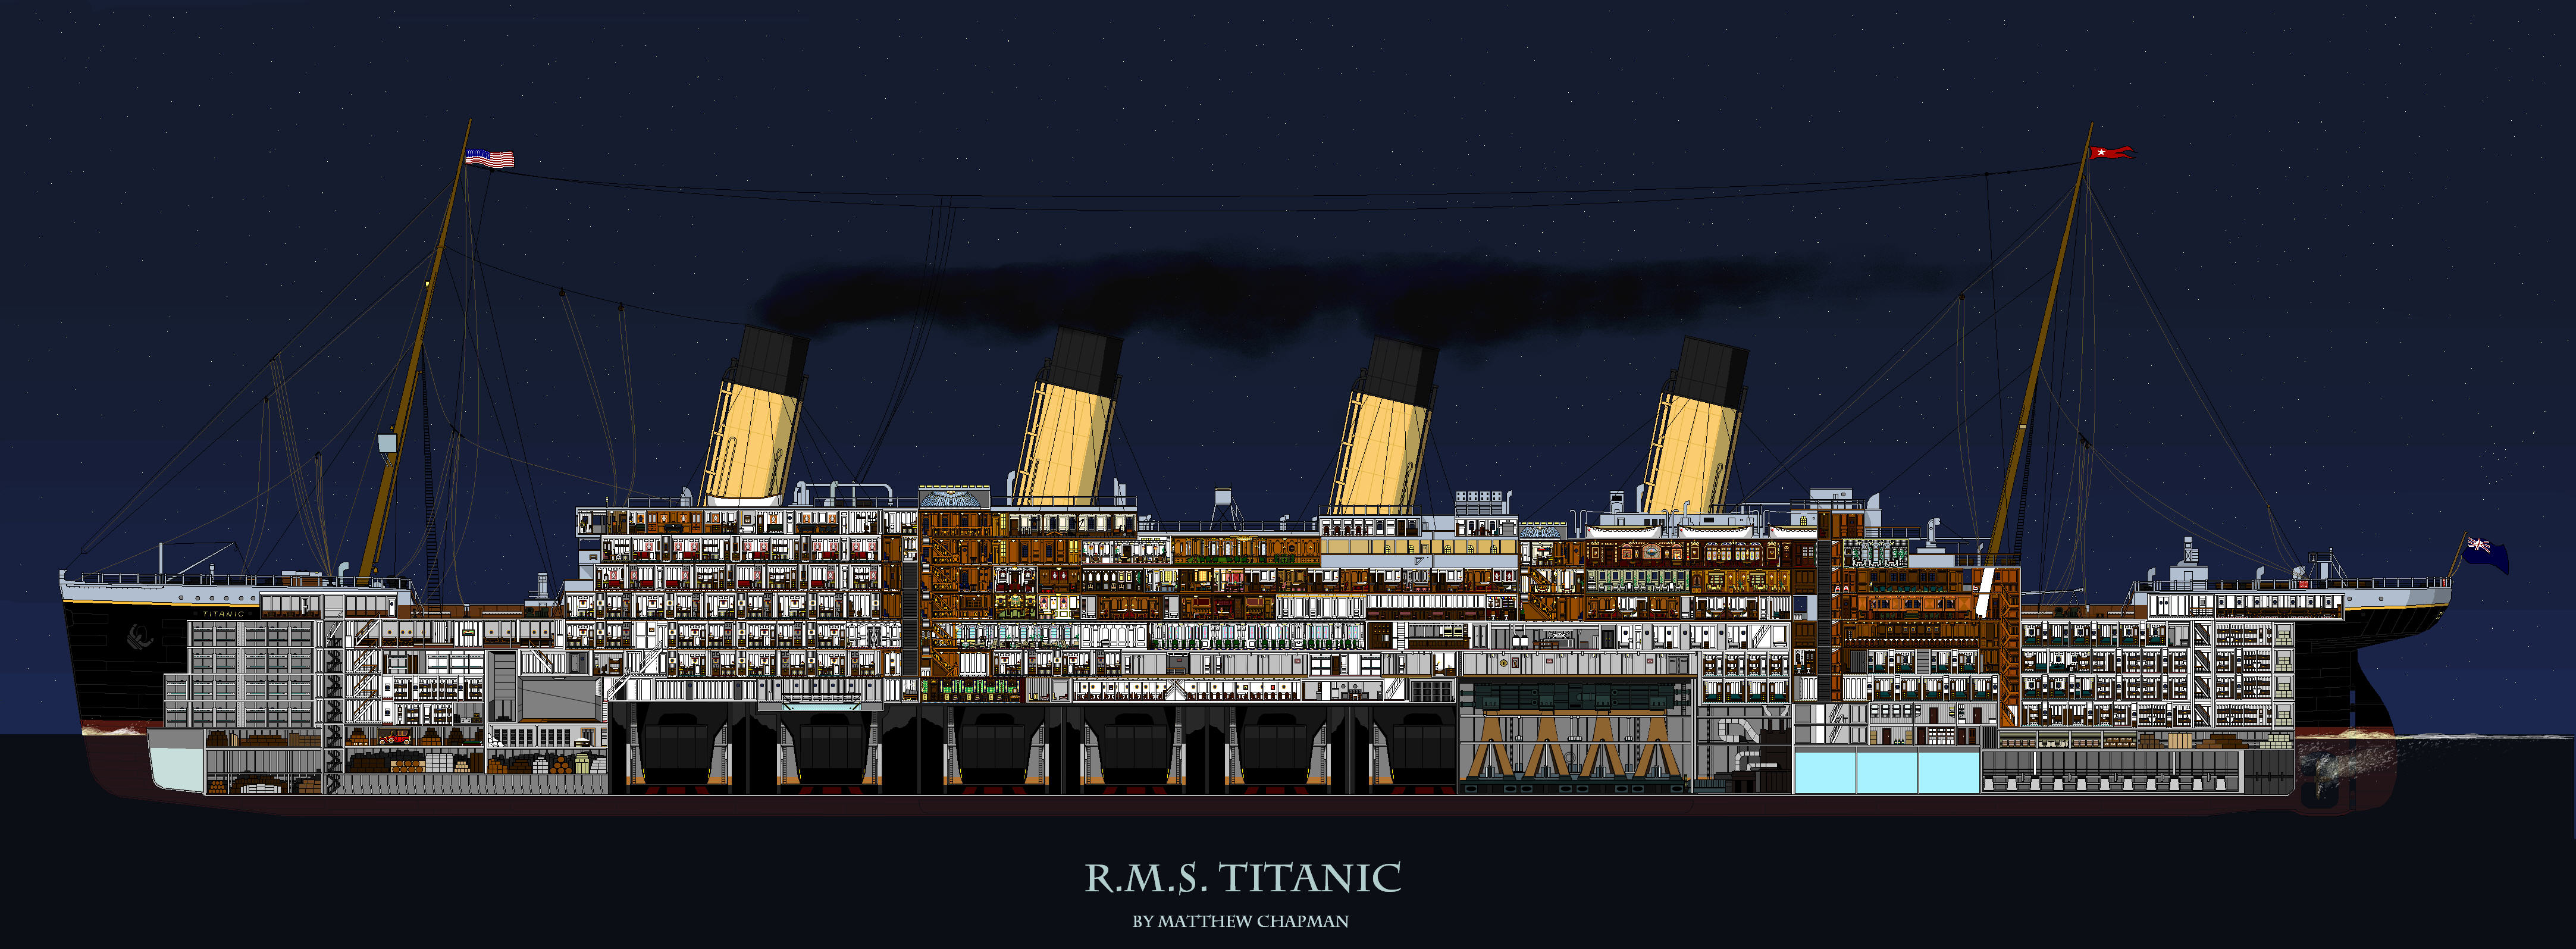 the sinking of the rms titanic The ss californian became titanic's scapegoat when she ignored the doomed liner's distress calls that fateful night only 5 miles from the sinking  rms carpathia .